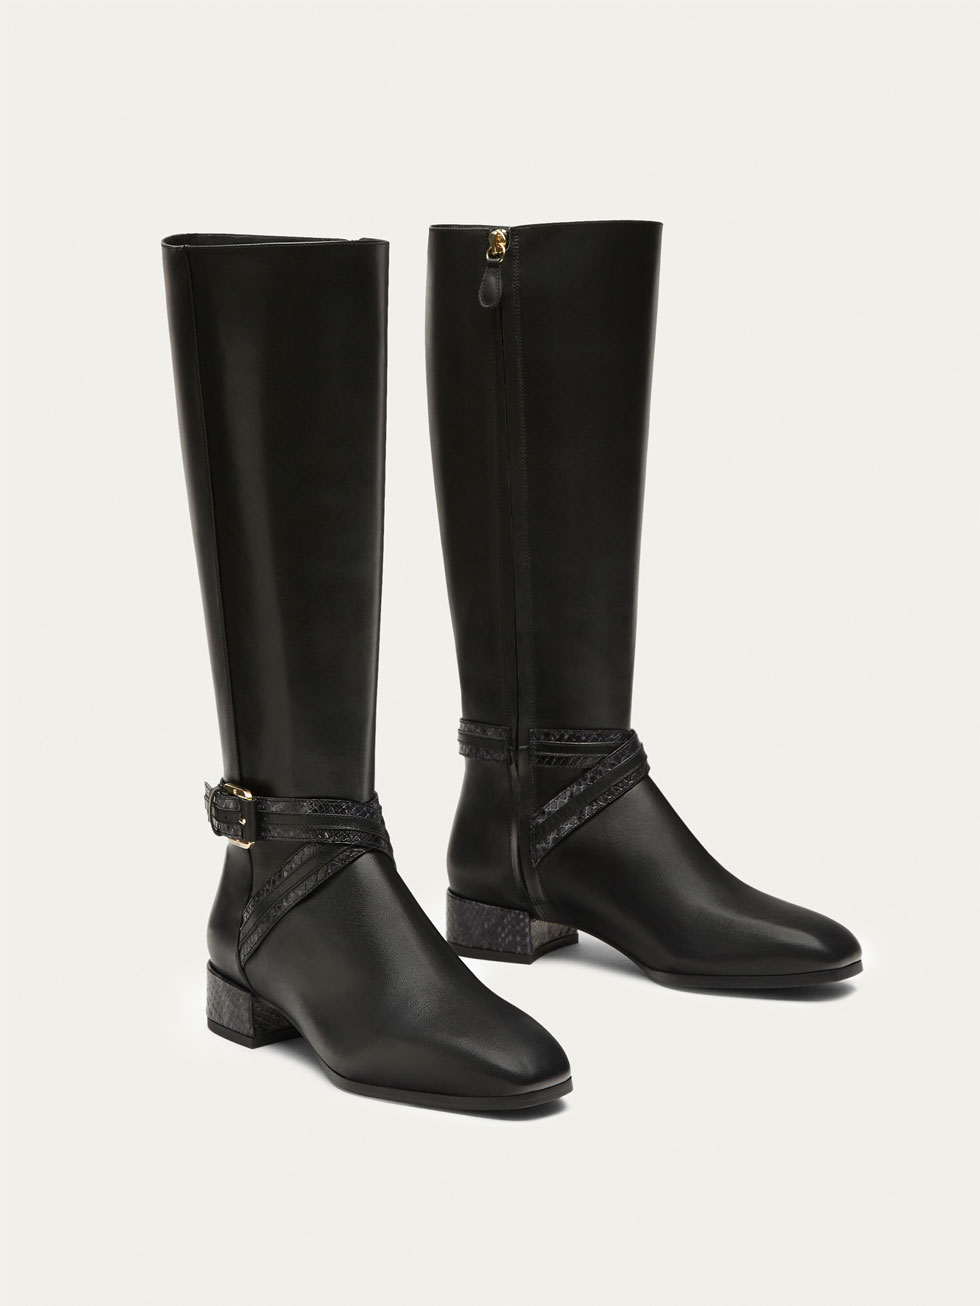 leather boots for women black lined leather boots